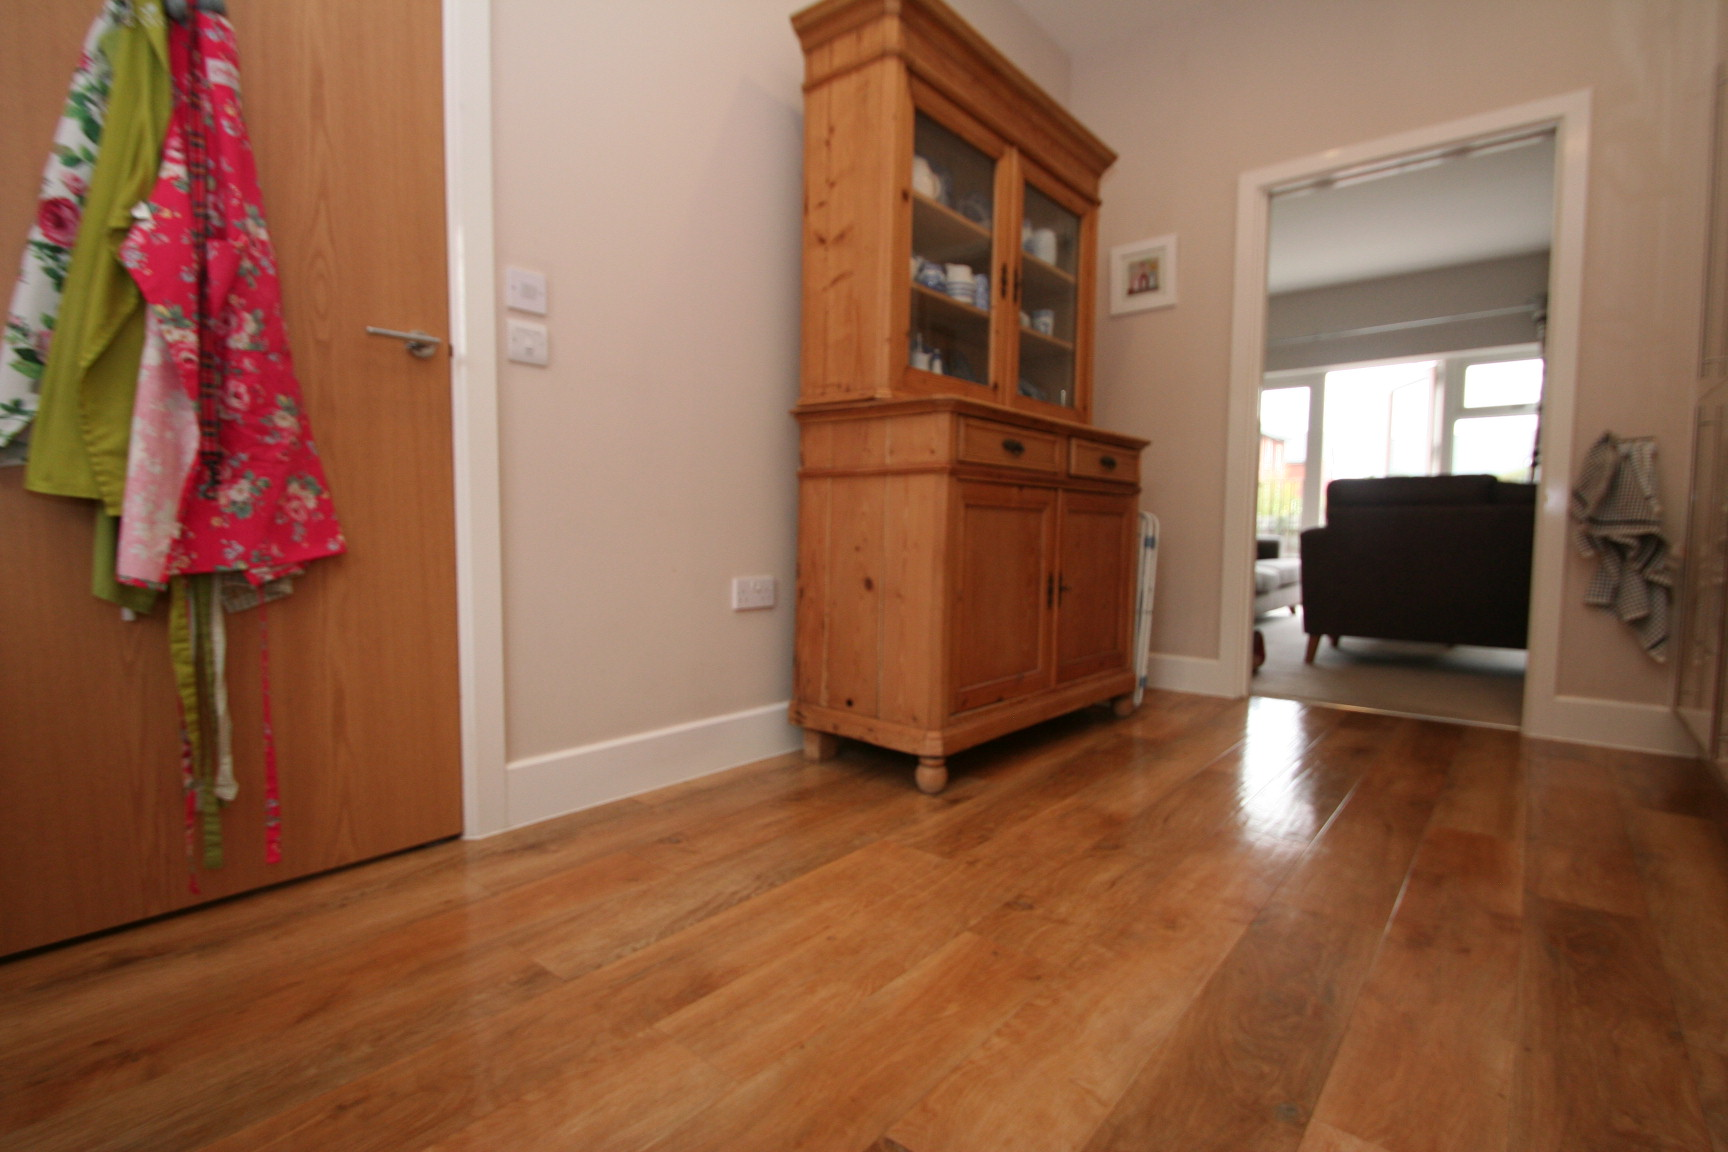 Newlands Way Cholsey Meadows Oxfordshire Homebase Property